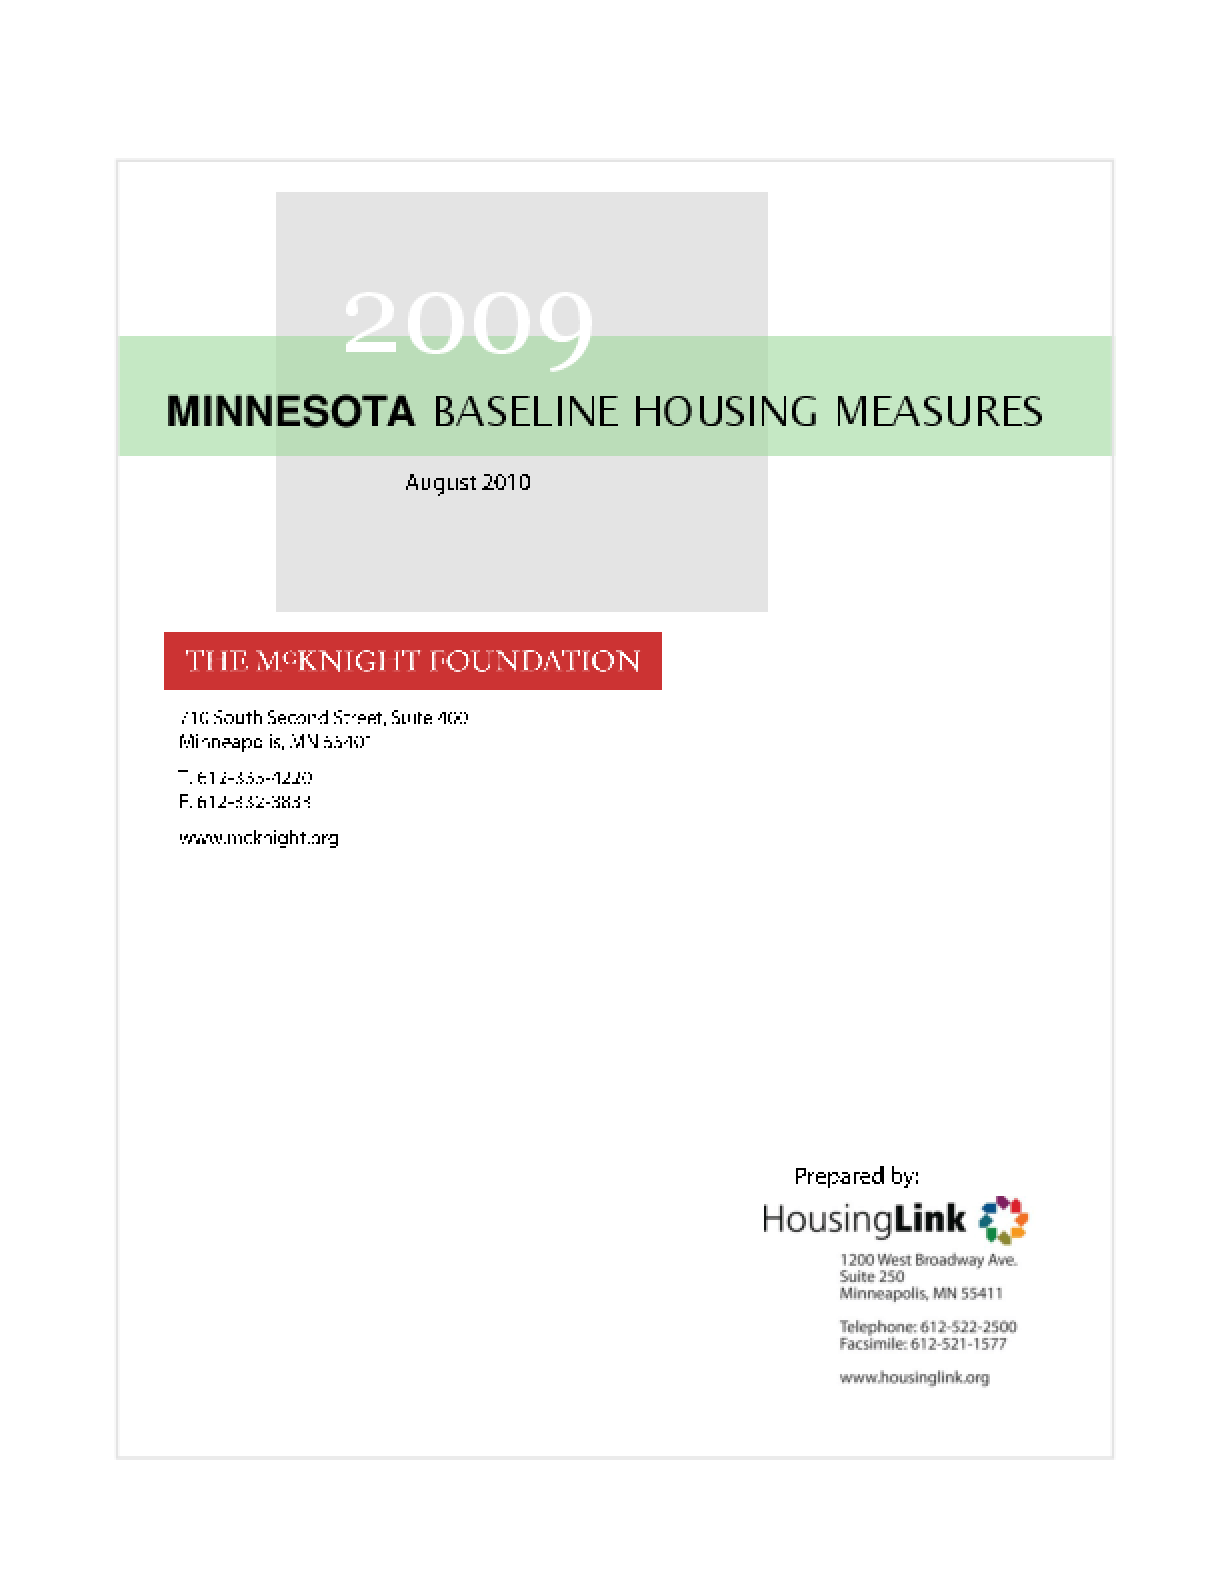 2009 Minnesota Baseline Housing Measures